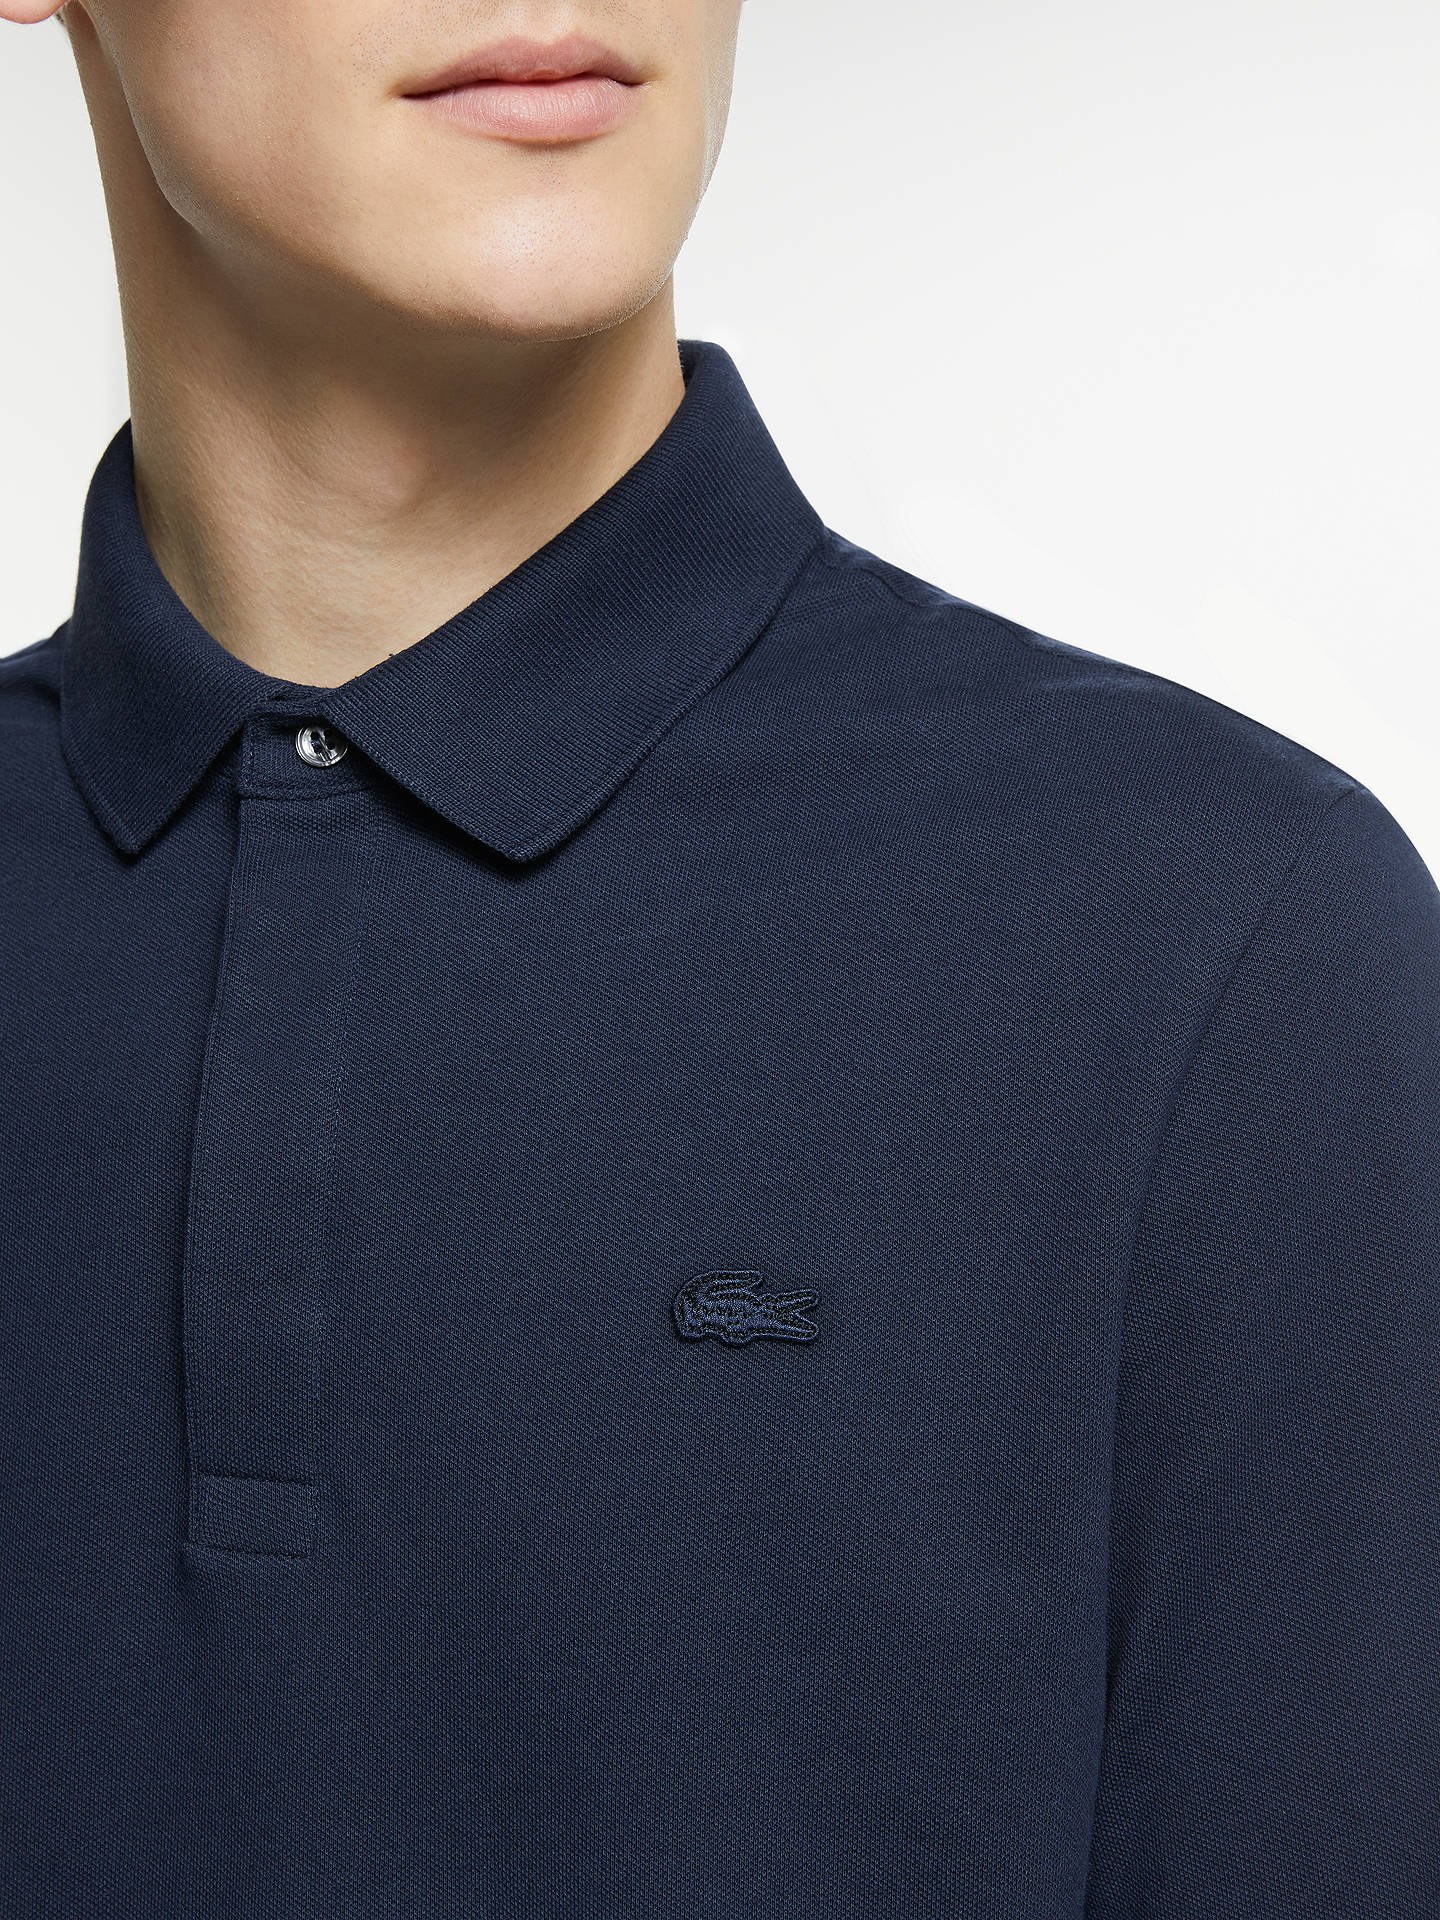 96b86a874b ... Buy Lacoste Paris Long Sleeve Polo Shirt, Marine, XL Online at  johnlewis.com ...